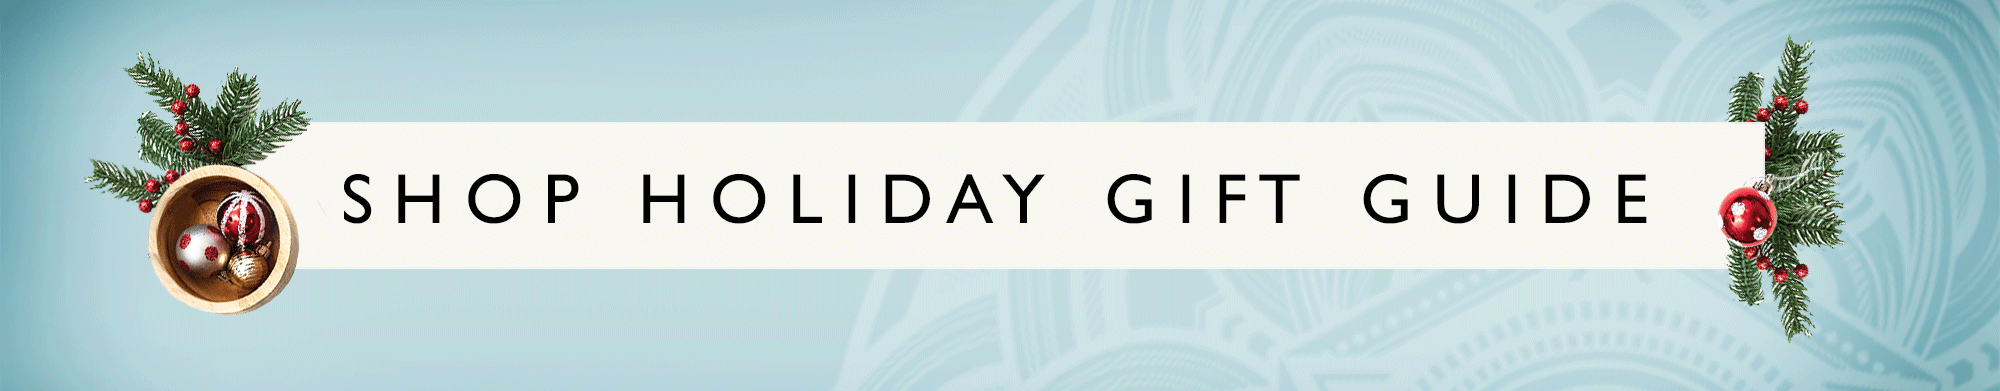 KC-HOLIDAY-GIFT-GUIDES-